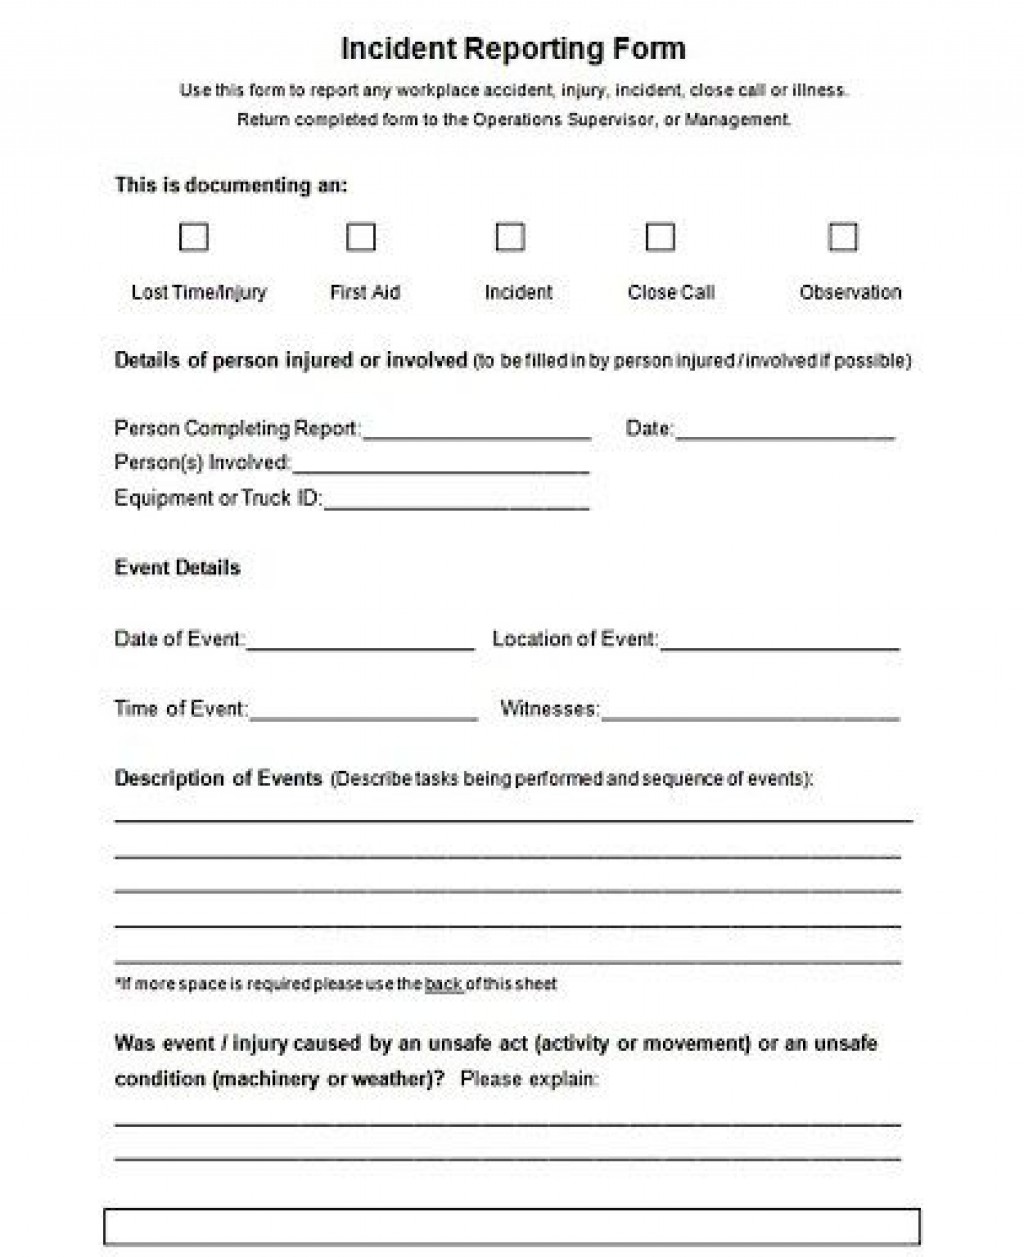 003 Unforgettable Accident Report Form Template Picture  Templates Free Ireland HseLarge